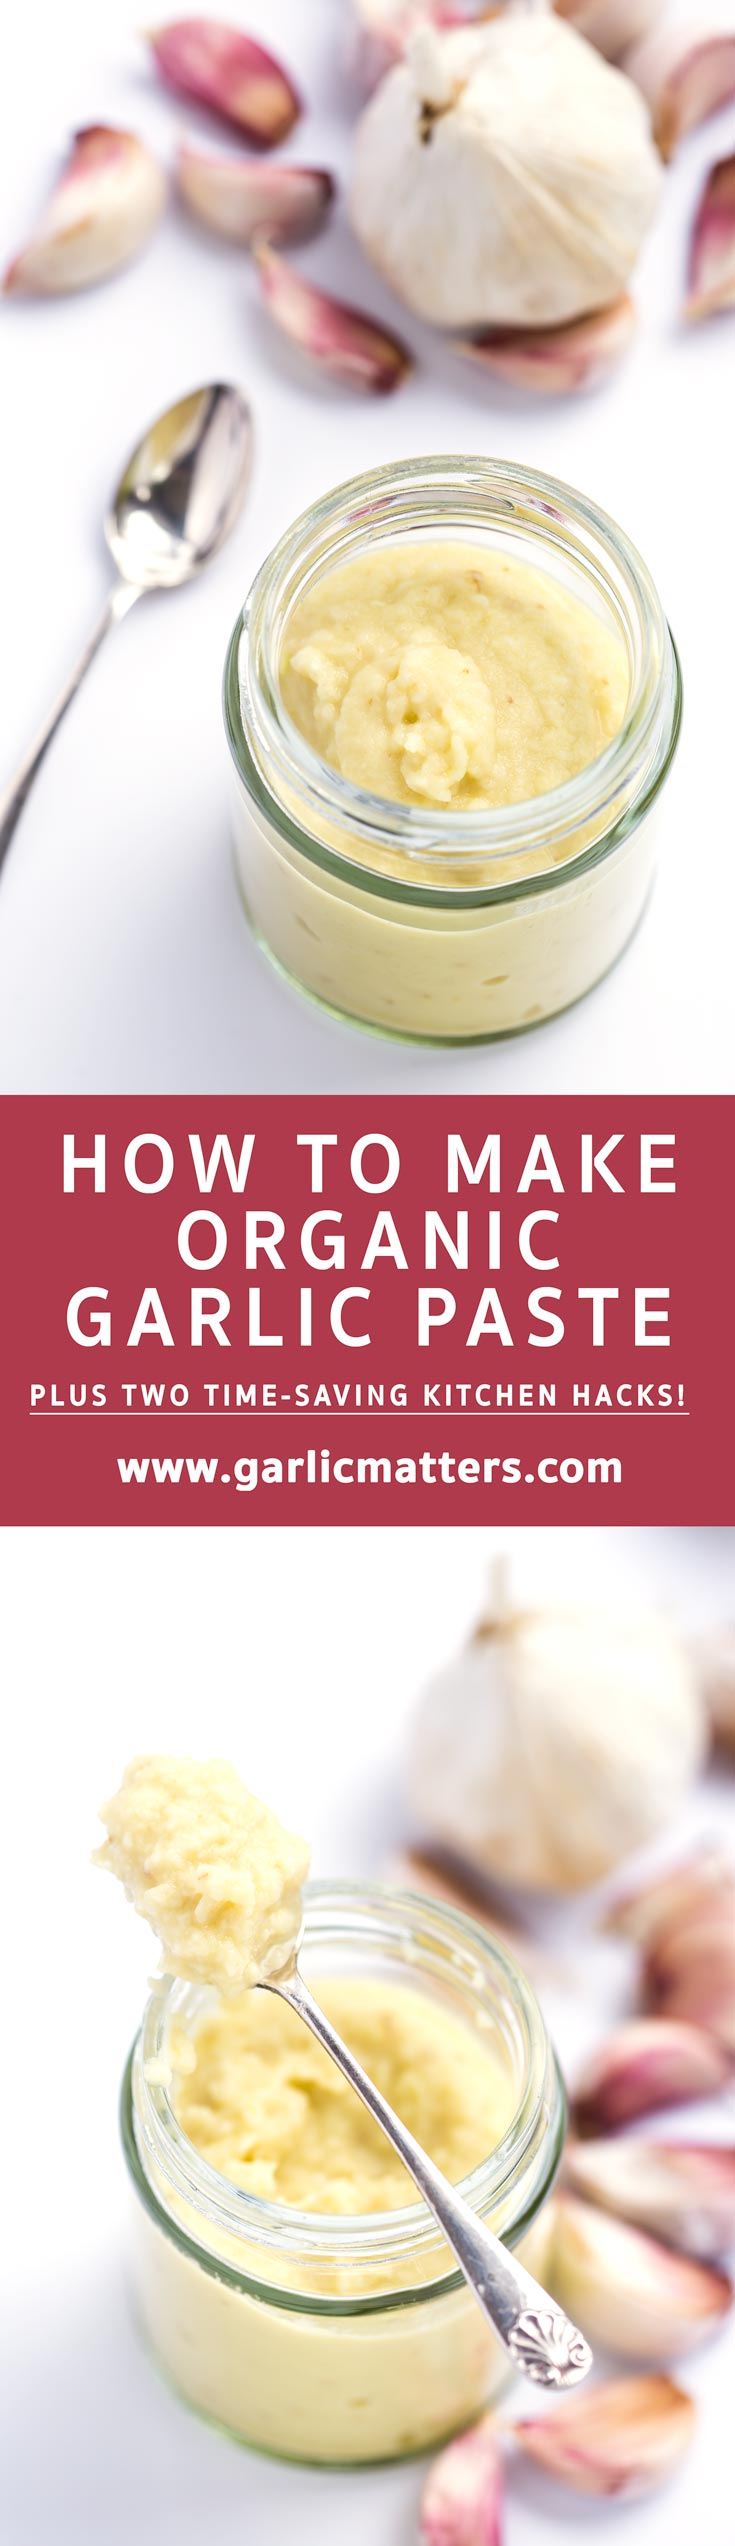 Learn how to make vegan, organic garlic paste at home and how to store it safely.